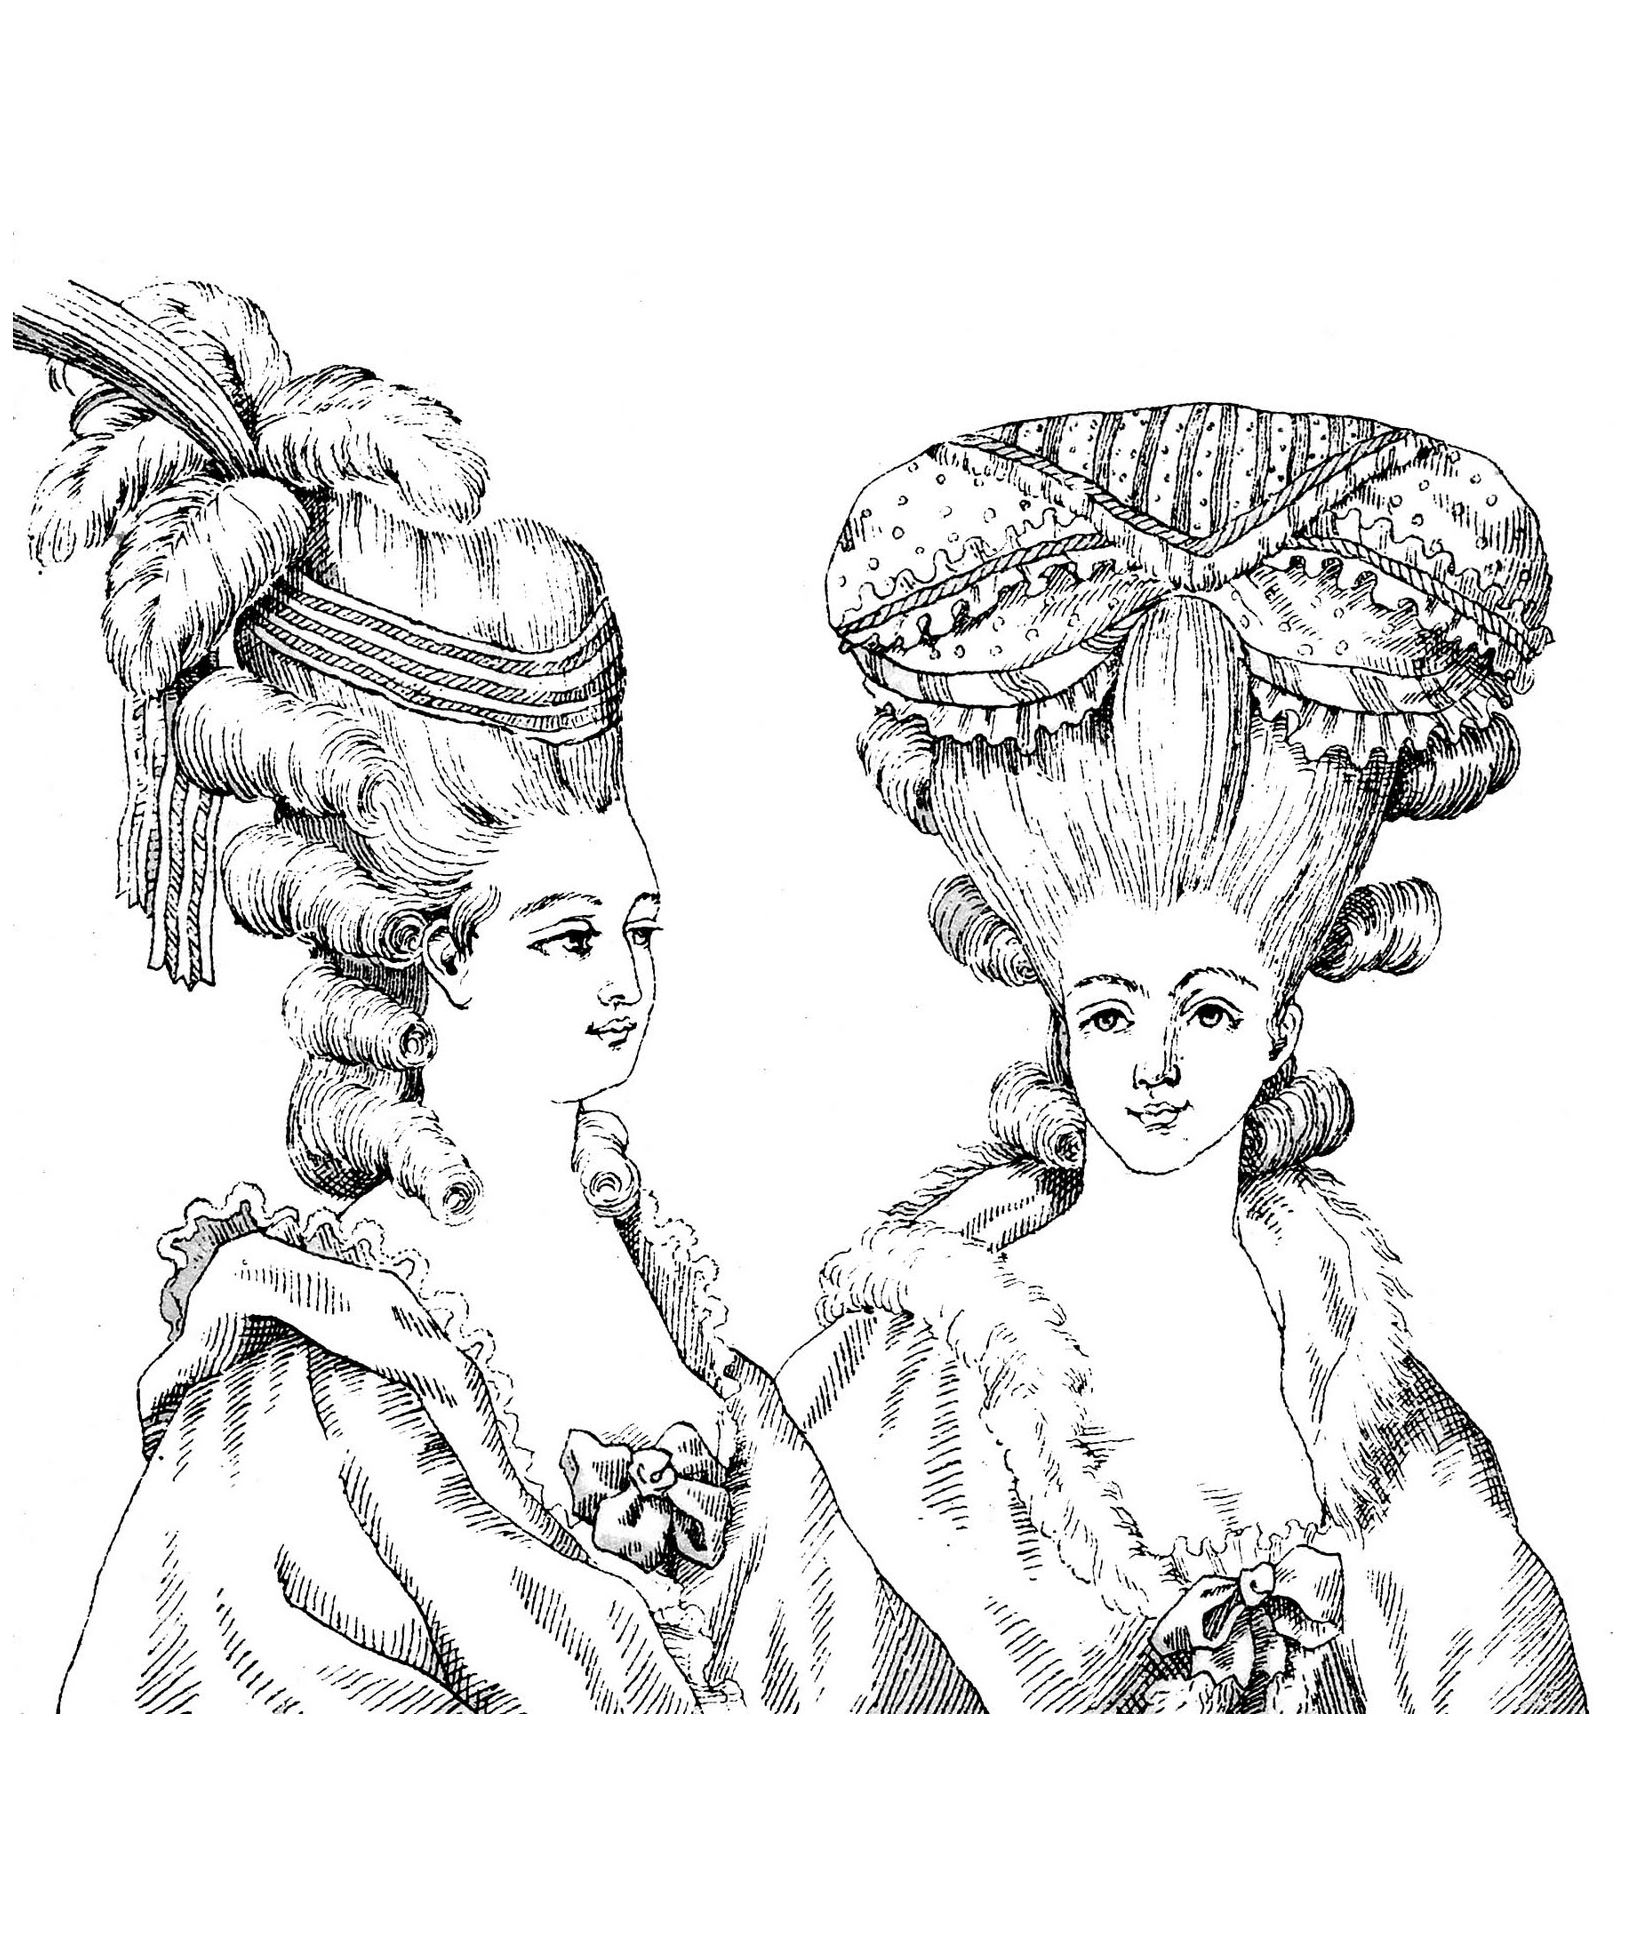 Hairdress of woman, 'Marie-Antoinette style'